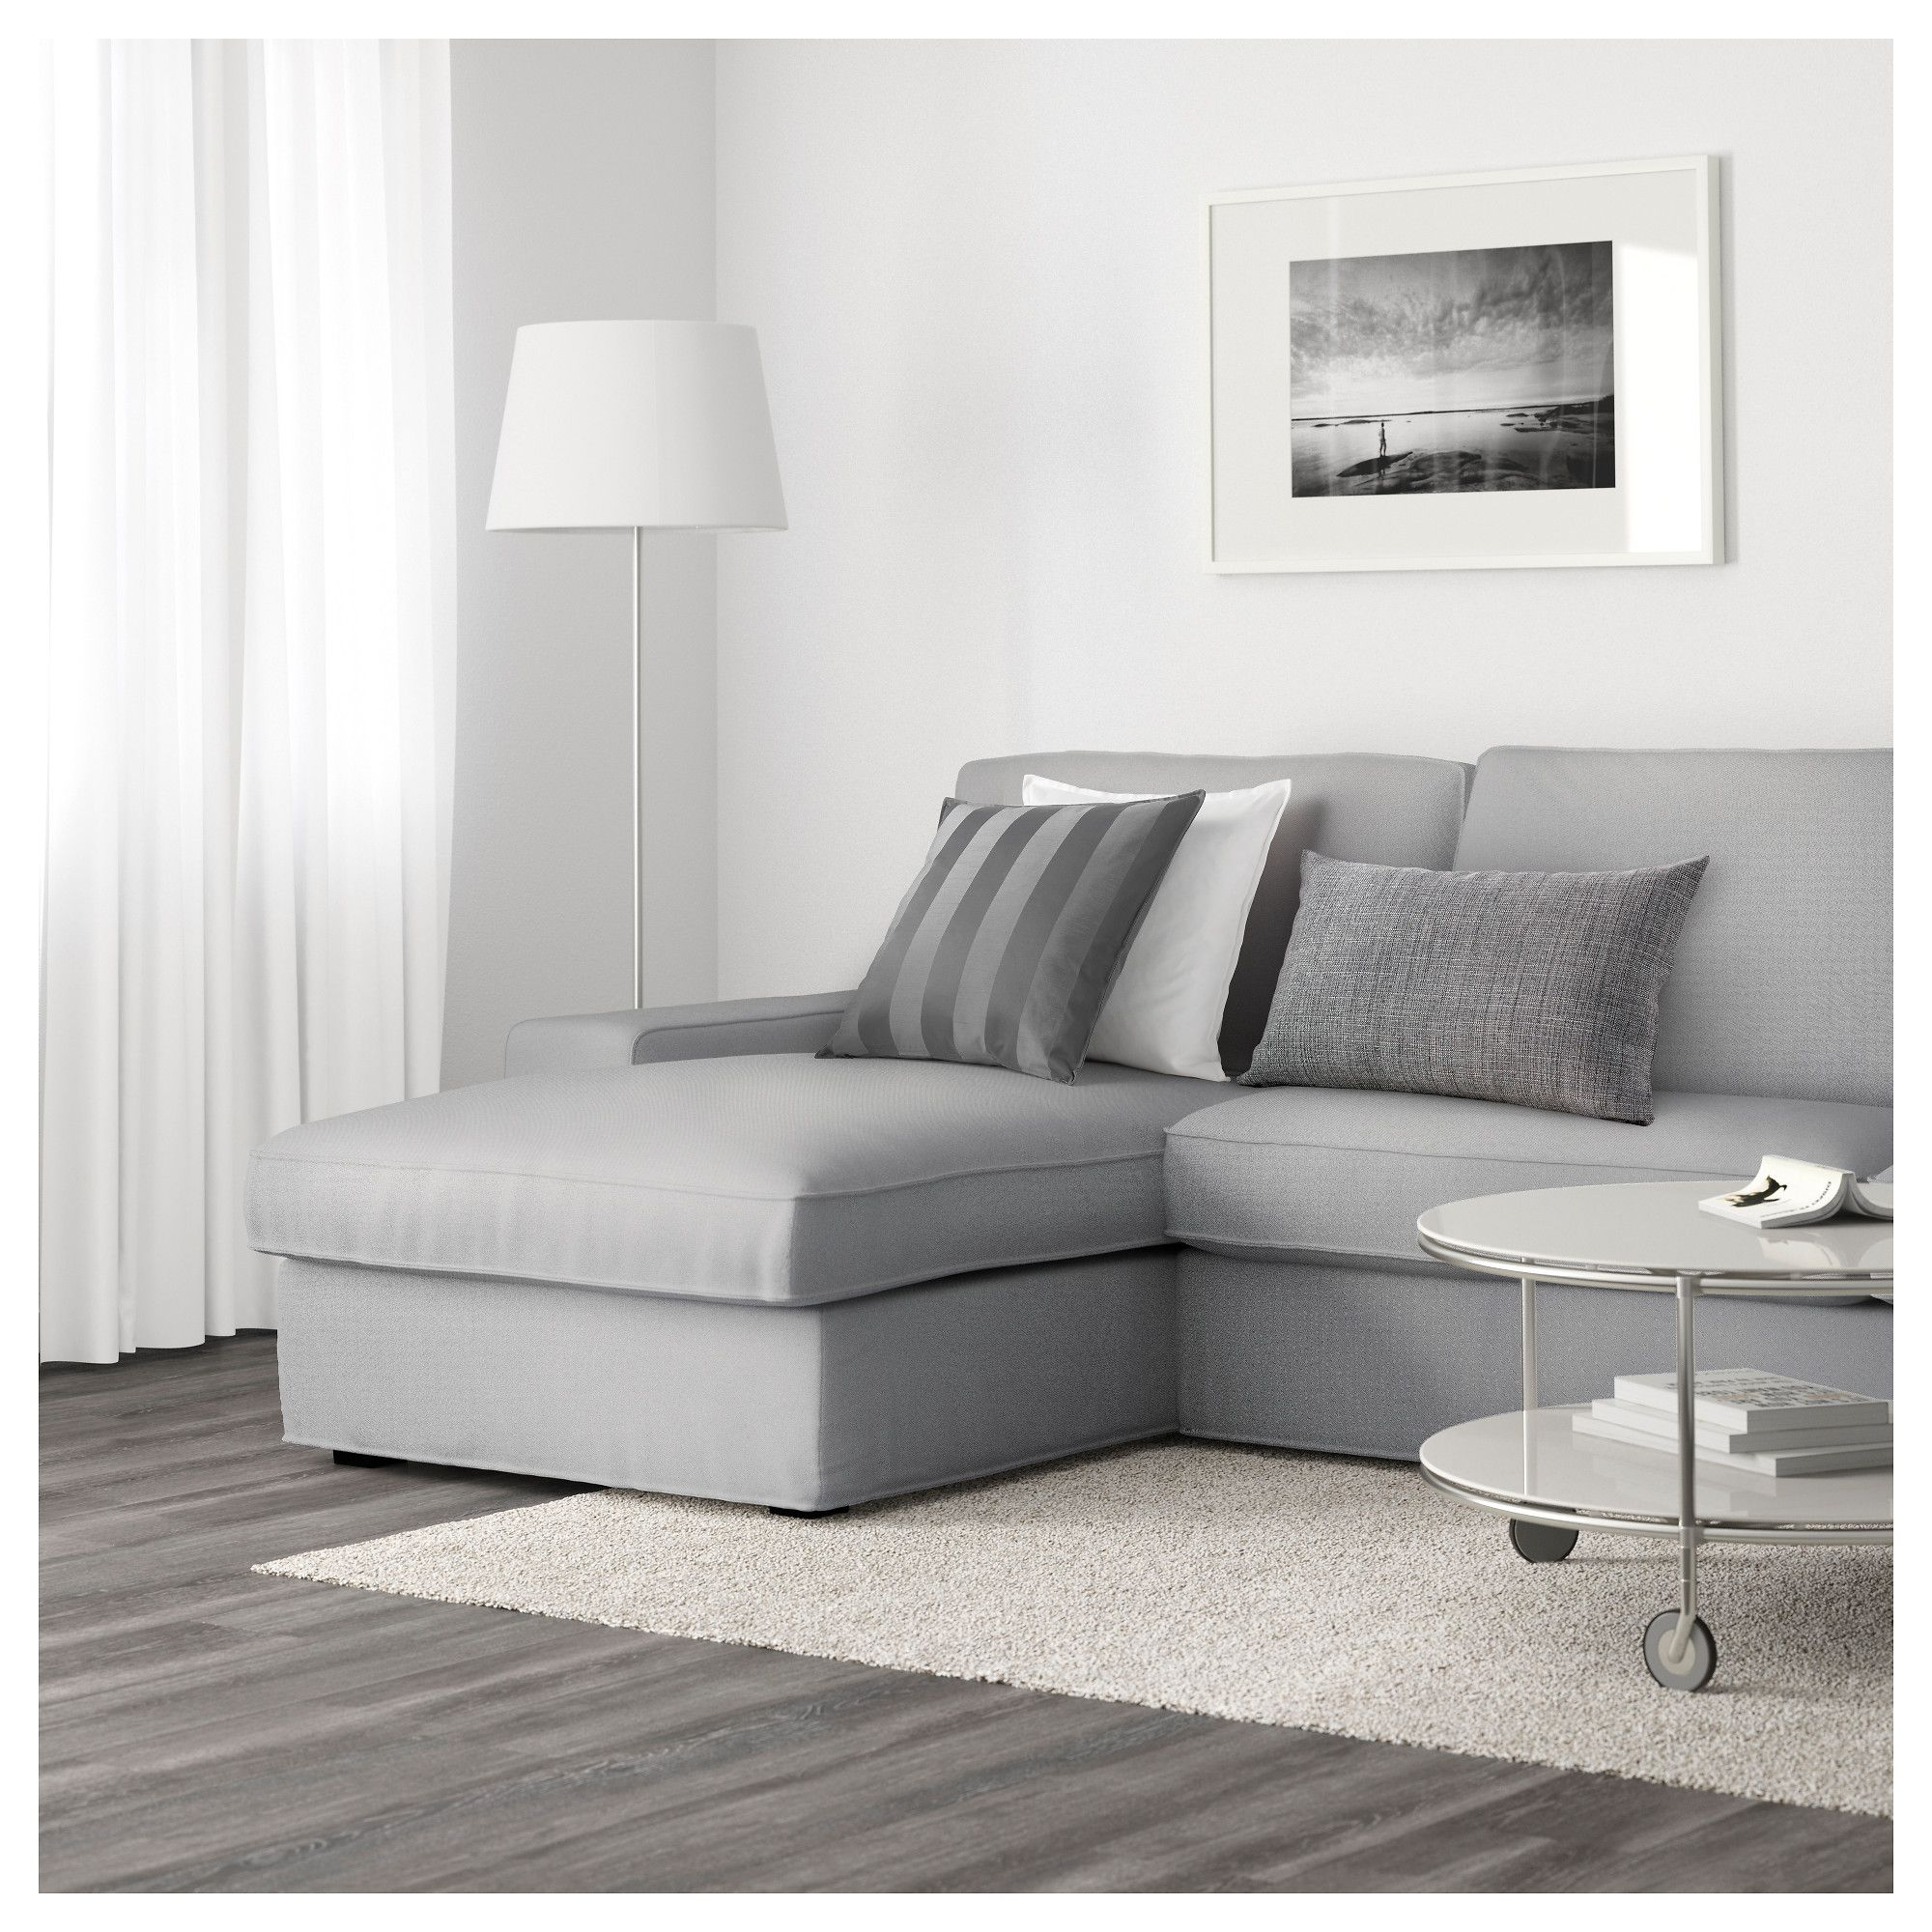 Furniture Home Furnishings Find Your Inspiration Kivik Sofa Small Sectional Sofa Sectional Sofa